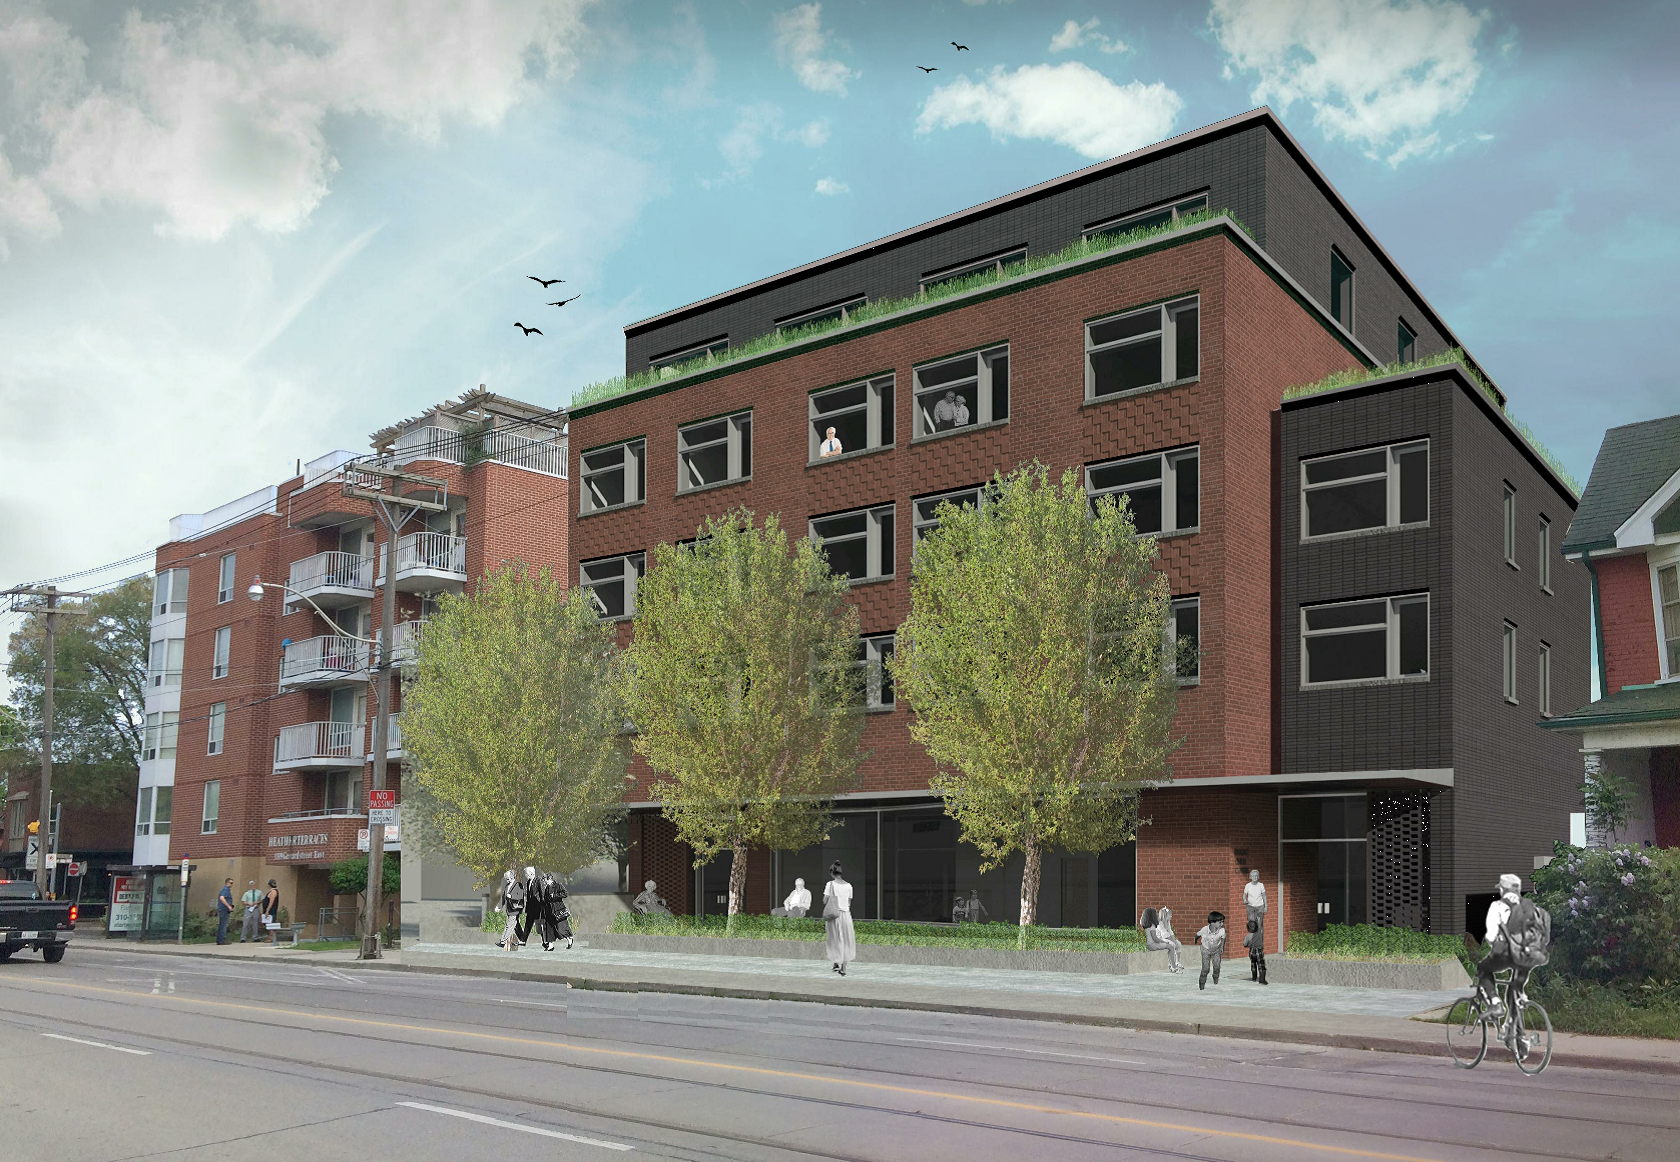 Rendering of an affordable rental building being developed in partnership between New Commons Development and a local community services organization in Toronto.